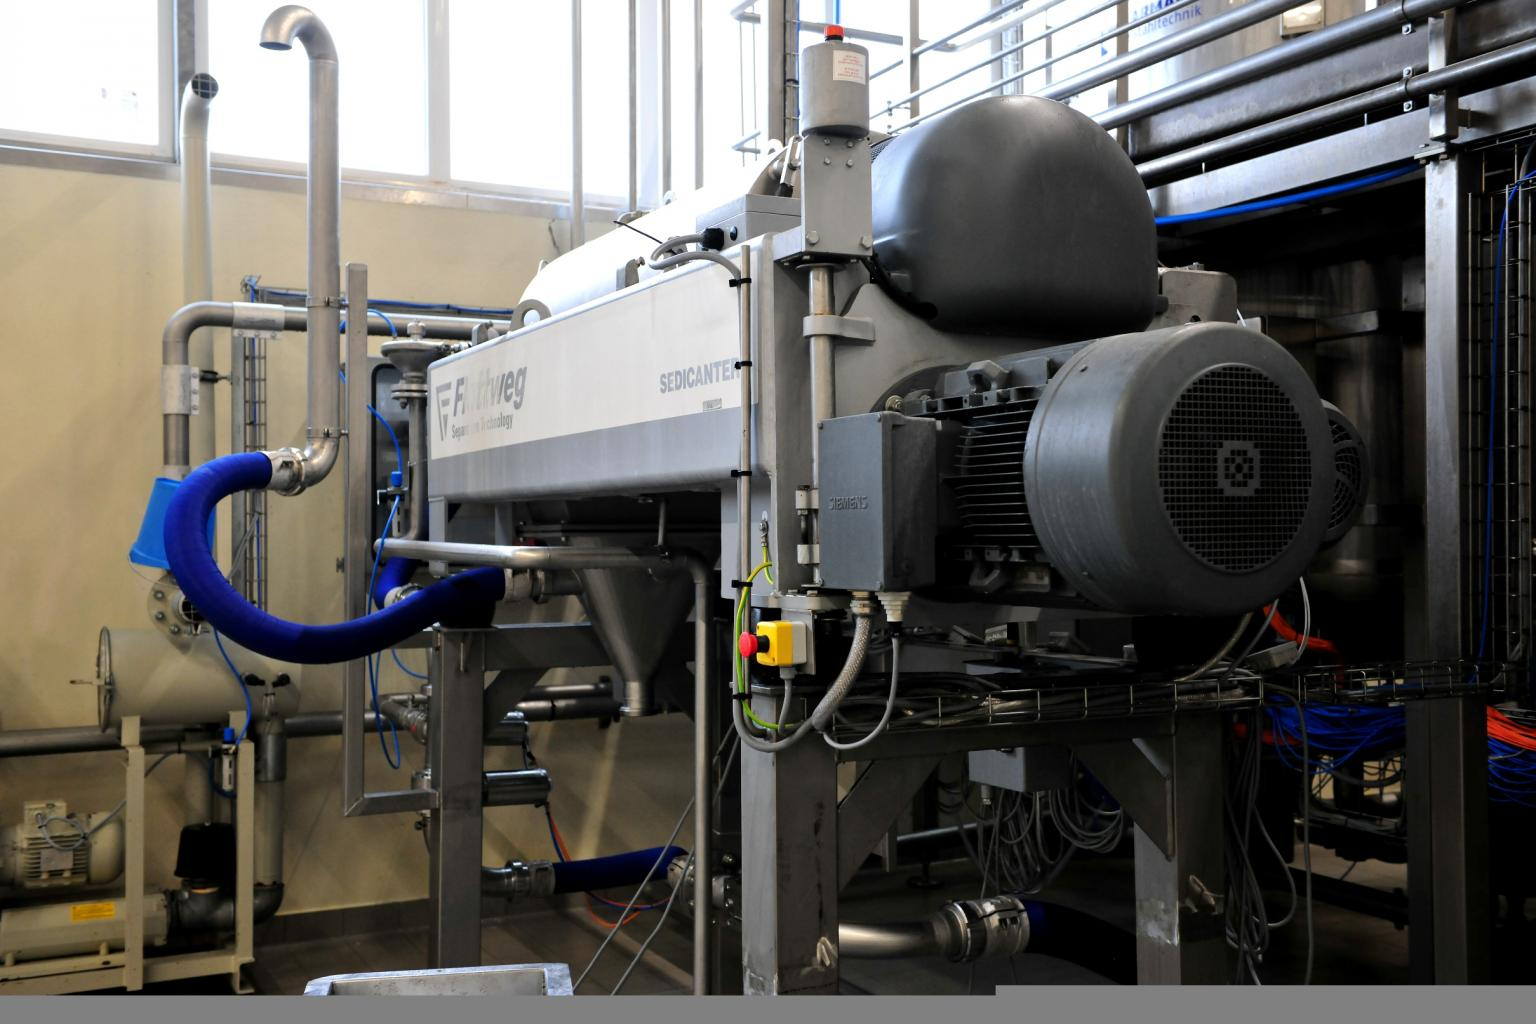 Flottweg's Sedicanter enables the processing of lupins at an industrial level